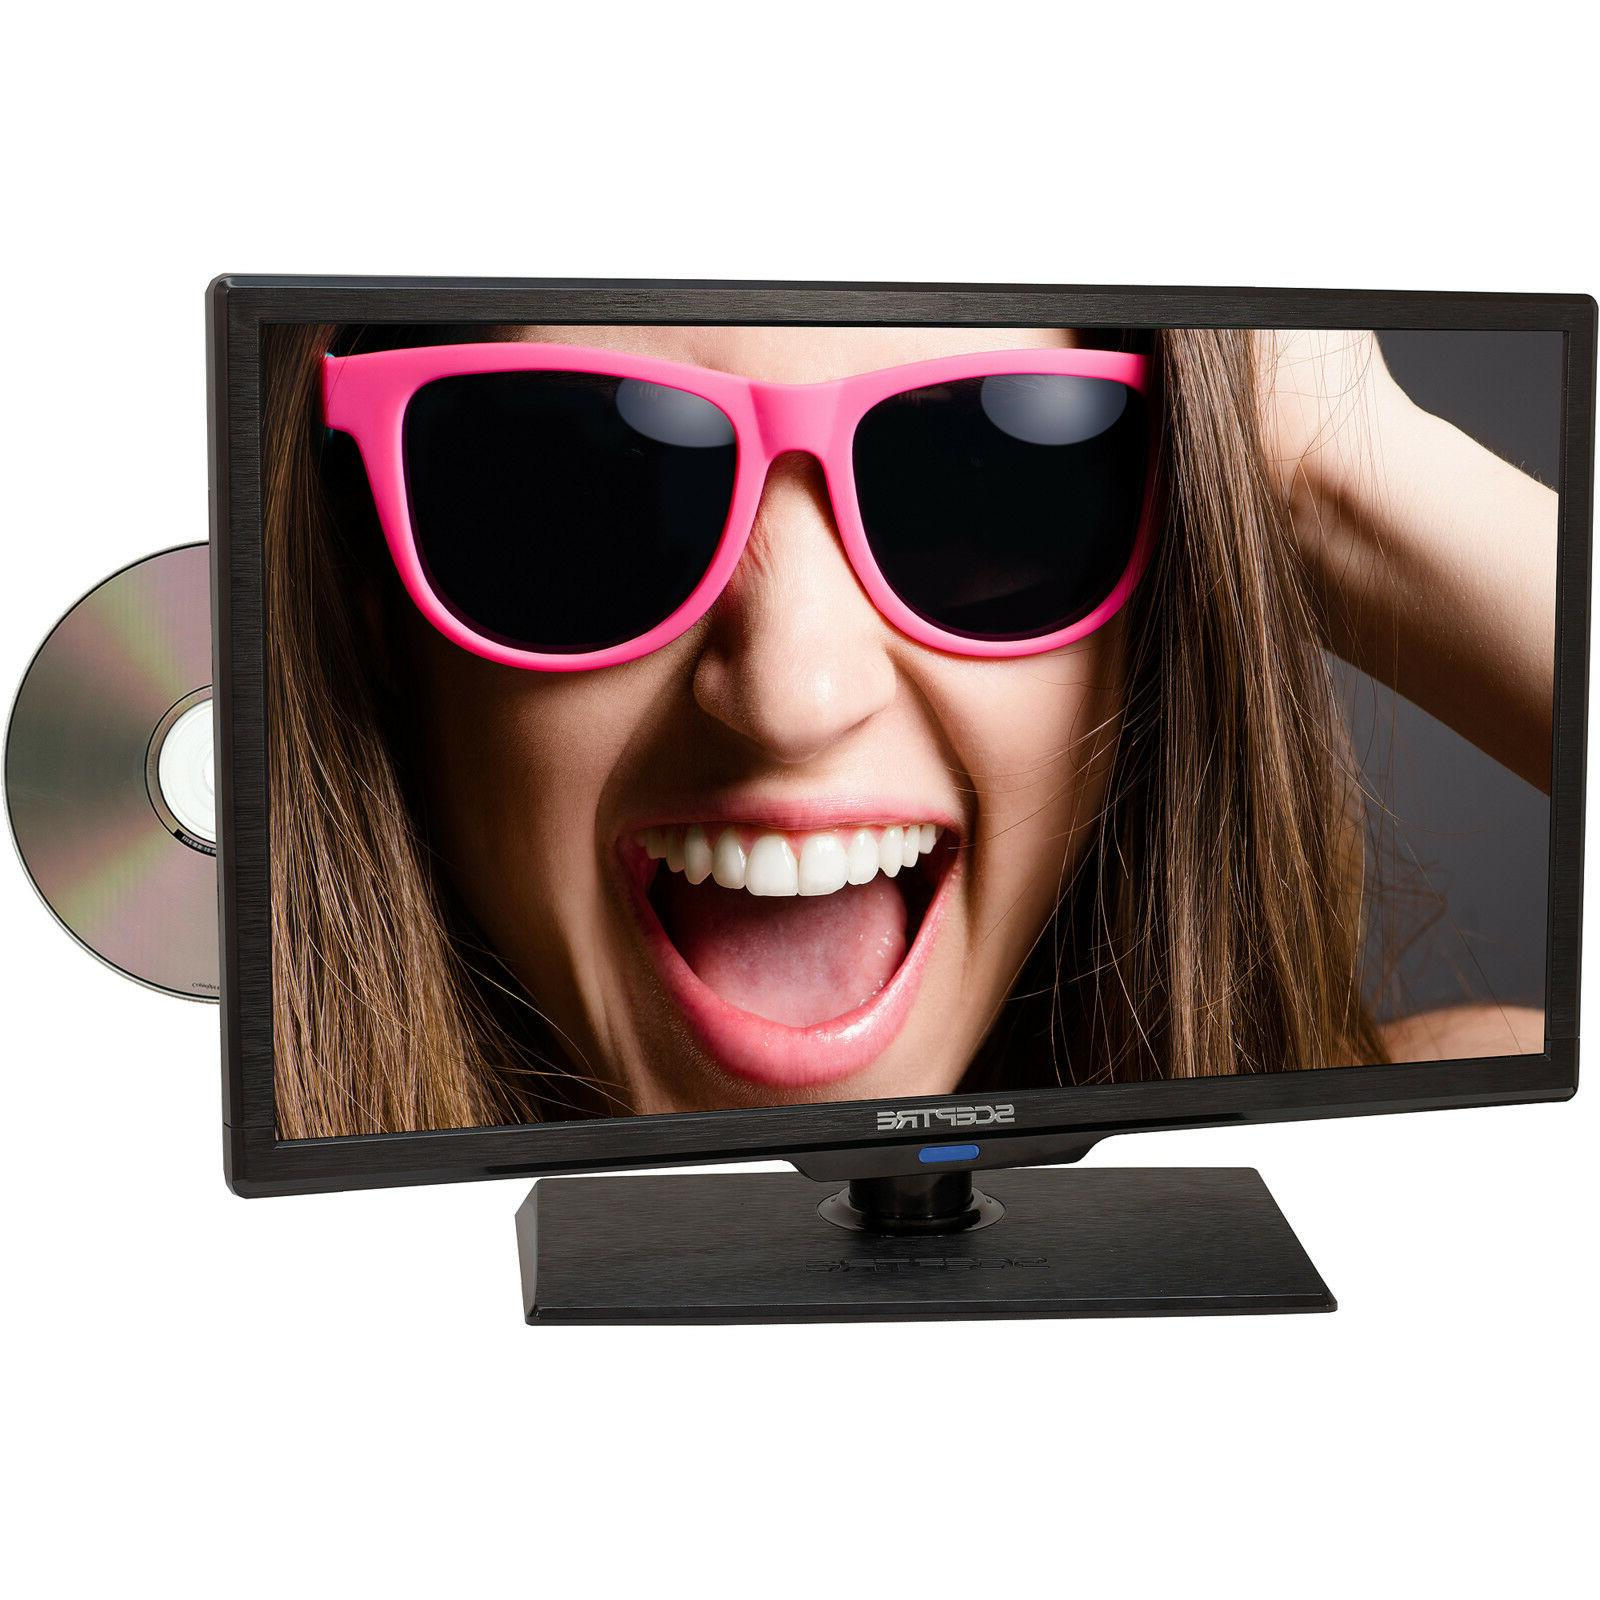 "Sceptre 19"" Class - HD, LED TV - 720p, 60Hz with Built-in DV"